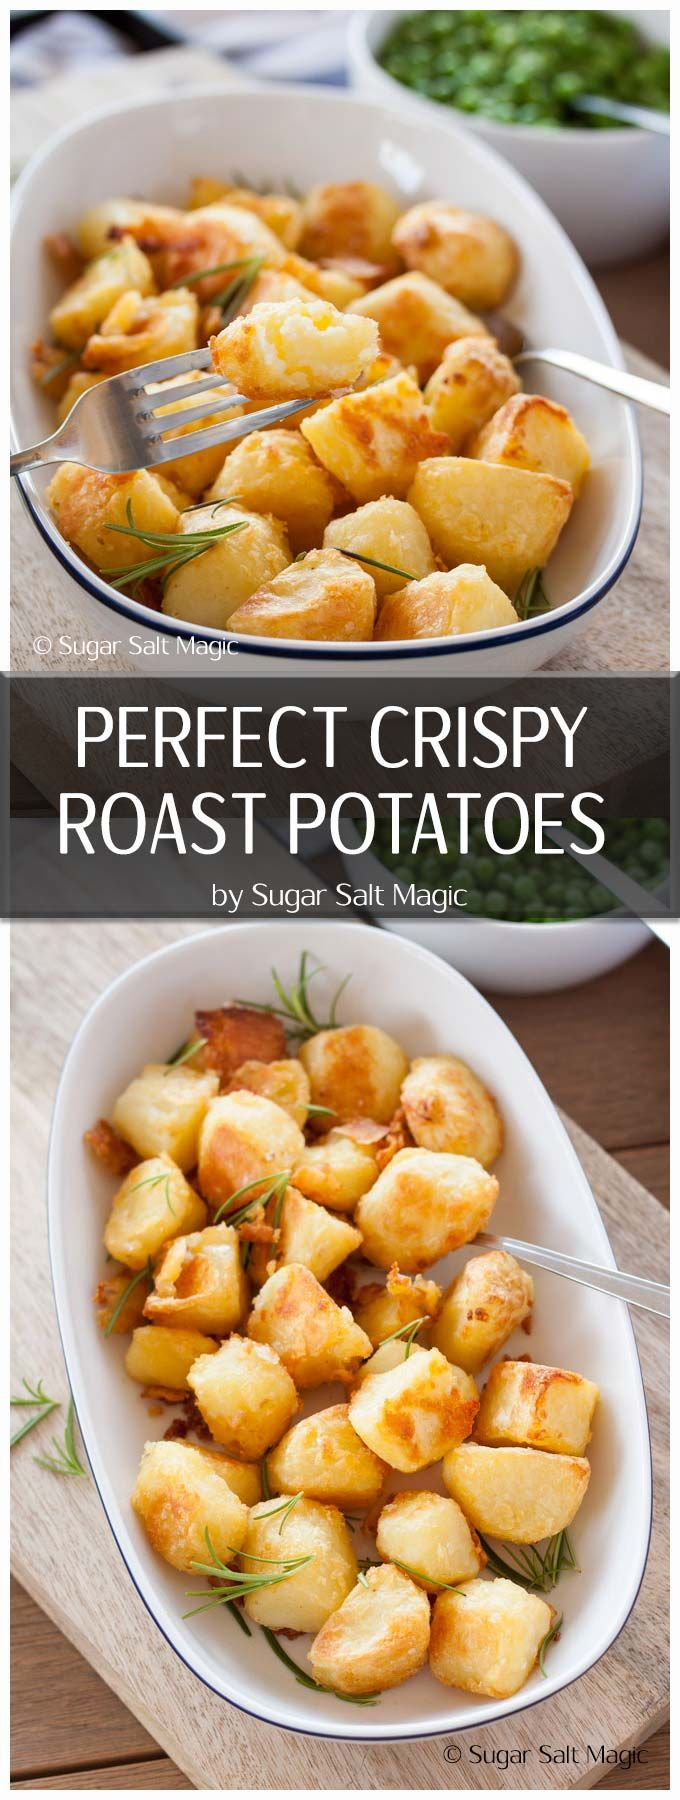 Crispy and golden on the outside, soft and fluffy in the middle - this is how to make Perfect Roast Potatoes #ovenroasted #potatoes via @sugarsaltmagic